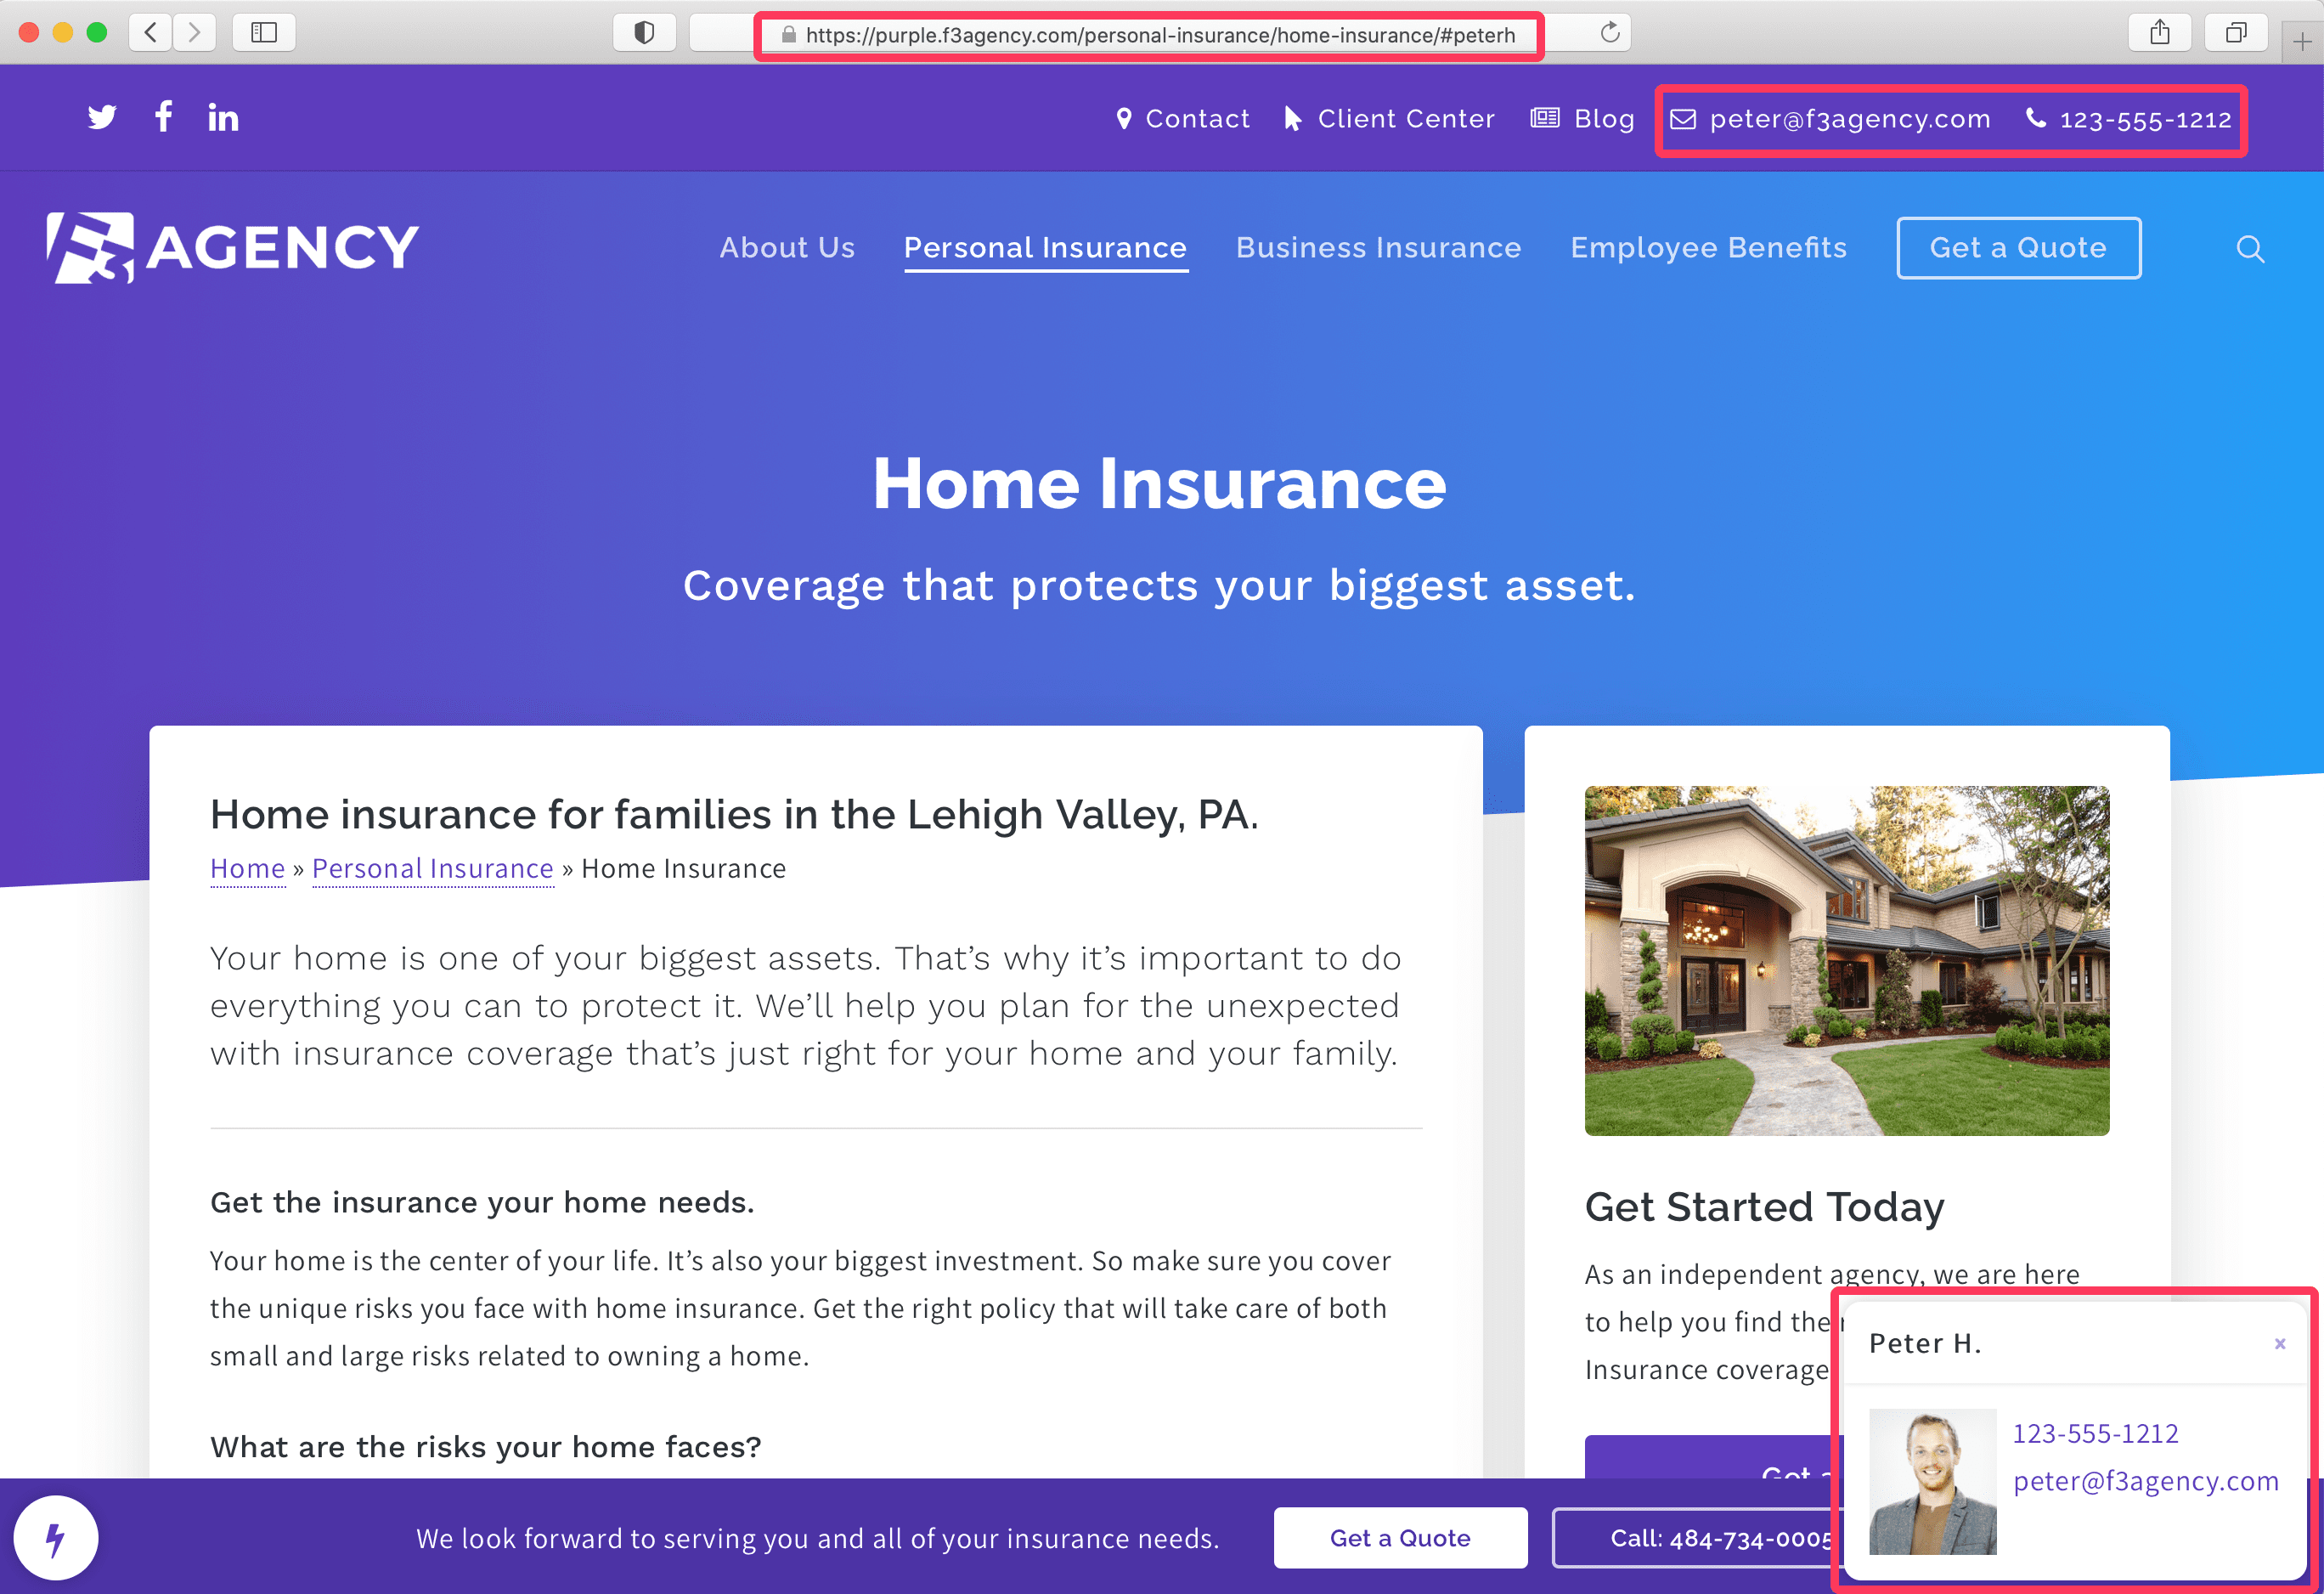 How to Use Hello Producer - Home Insurance Page with Hello Producer Activated